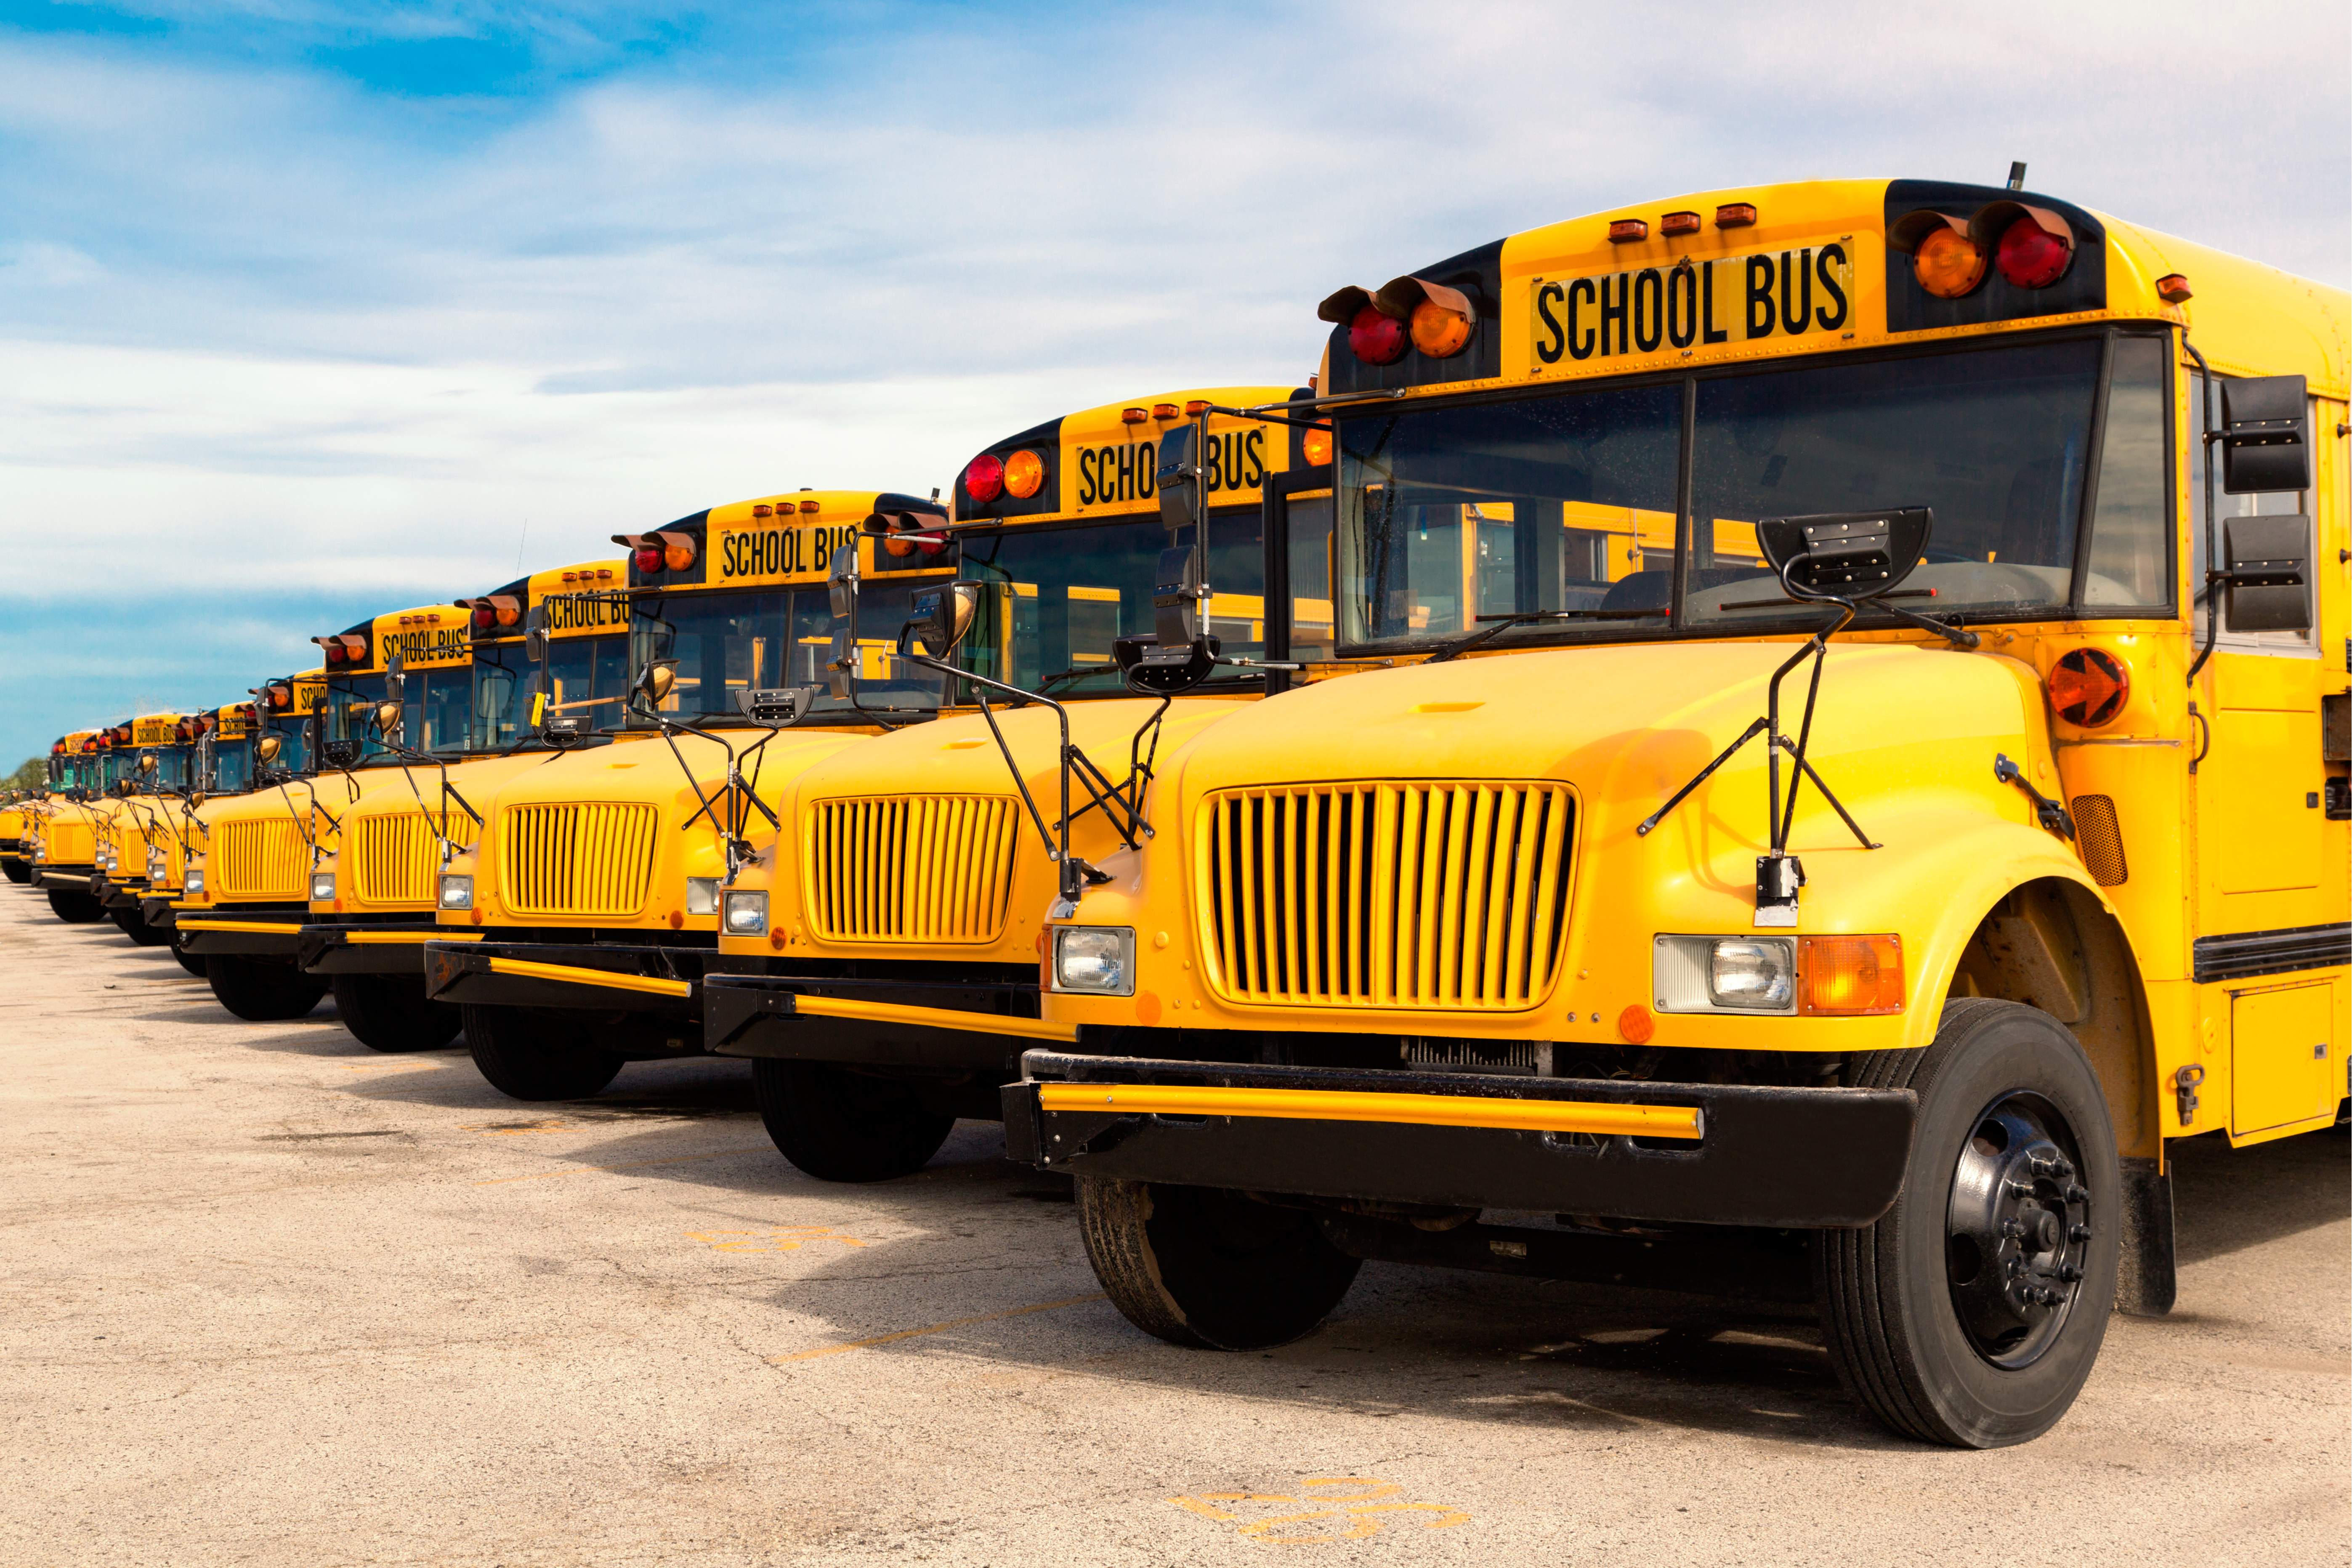 Image of school buses parked in a row